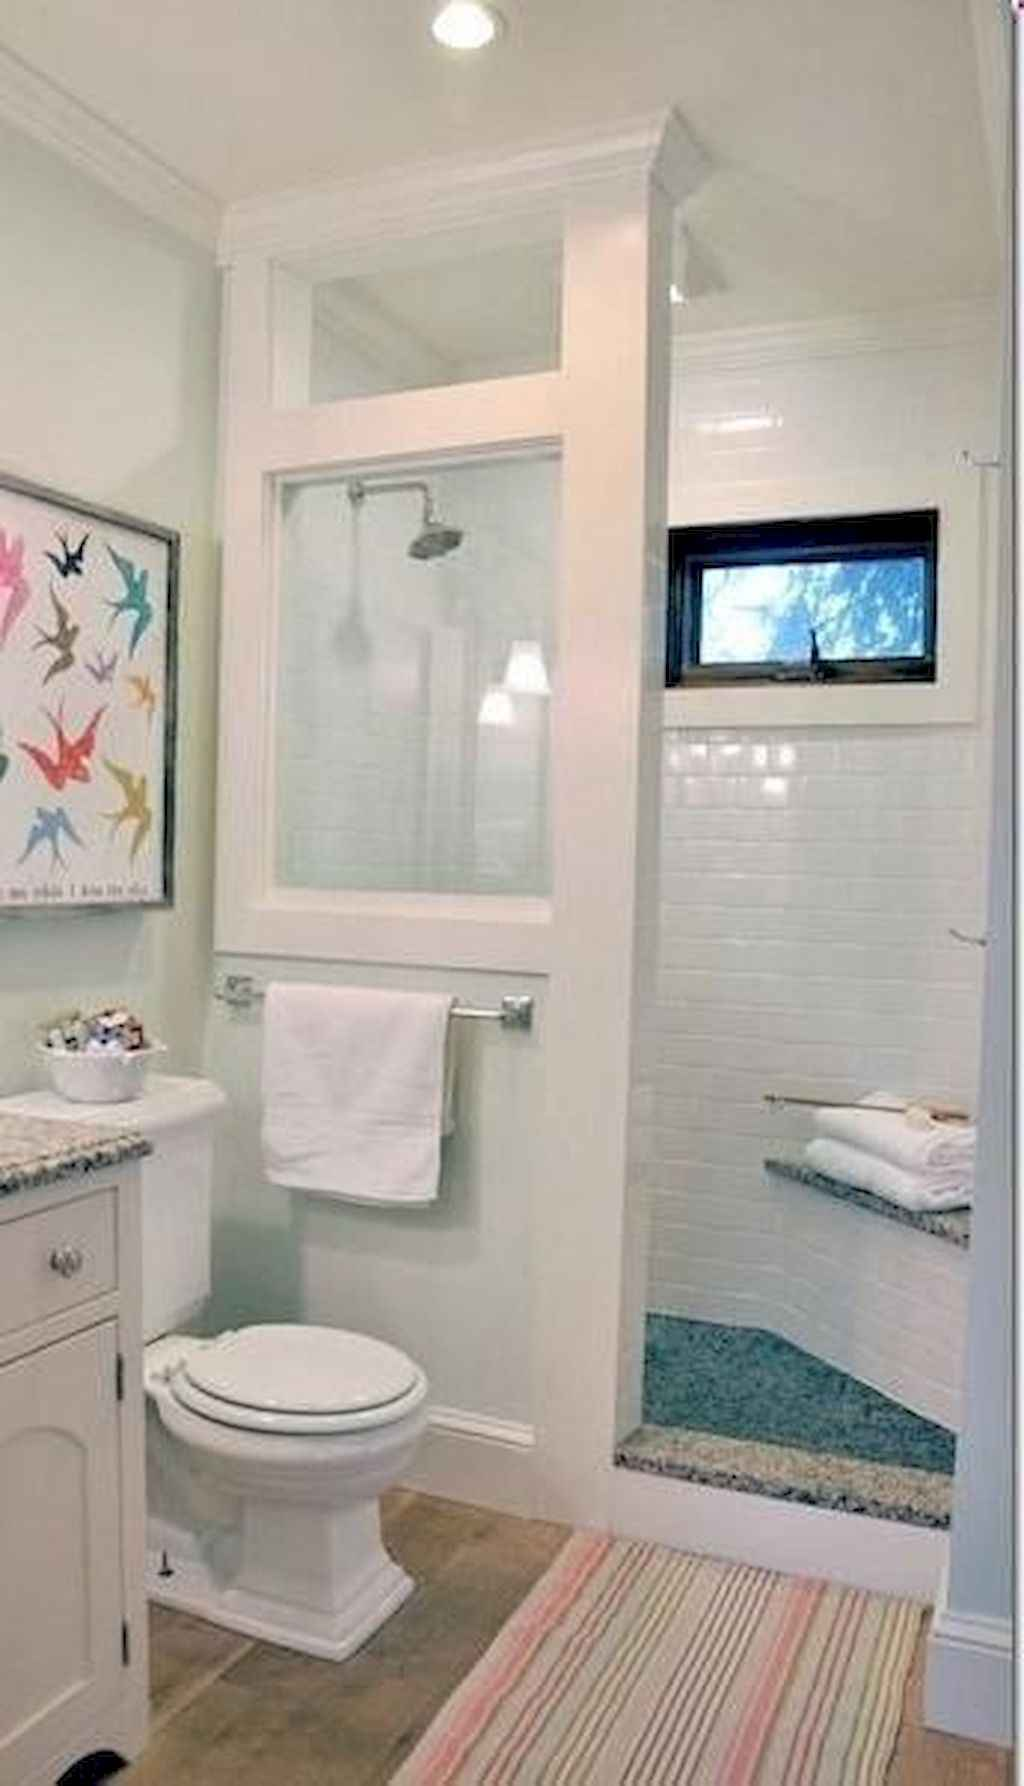 Amazing tiny house bathroom shower ideas 44 homespecially for Amazing small bathrooms